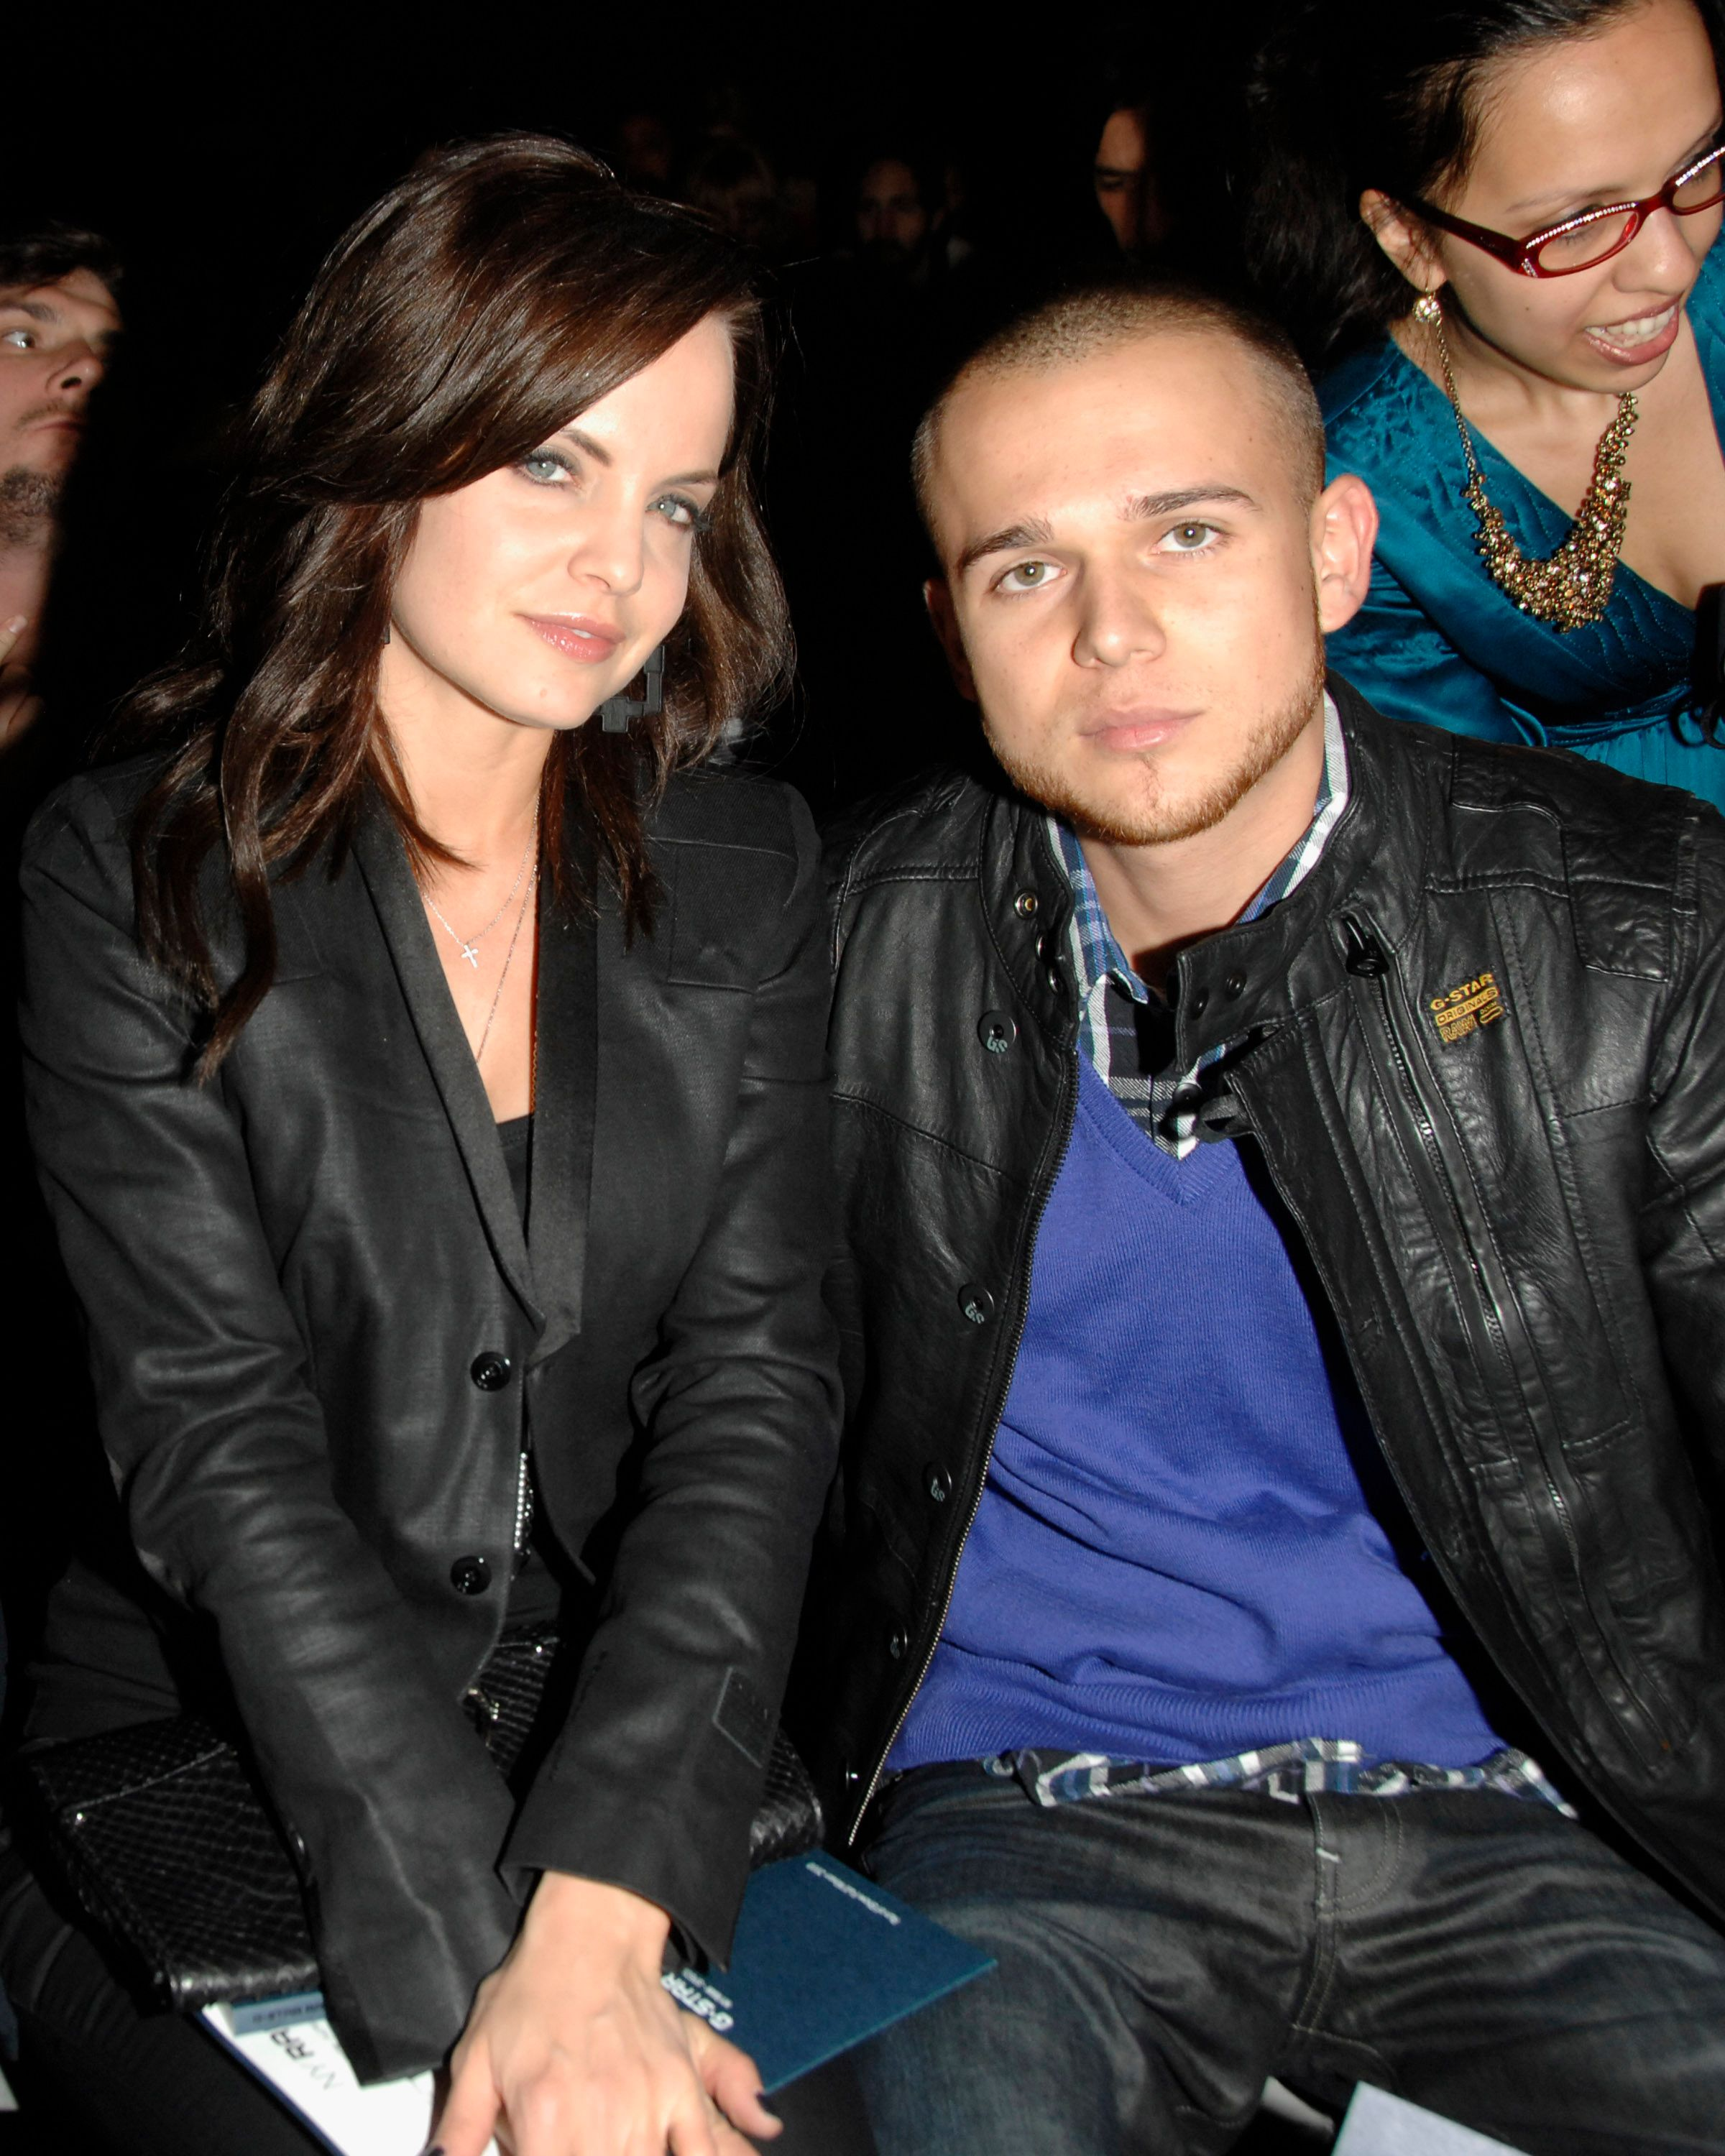 Mena Suvari and Simone Sestito at the NY RAW Fall/Winter 2010 Collection in 2010 in New York City | Source: Getty Images